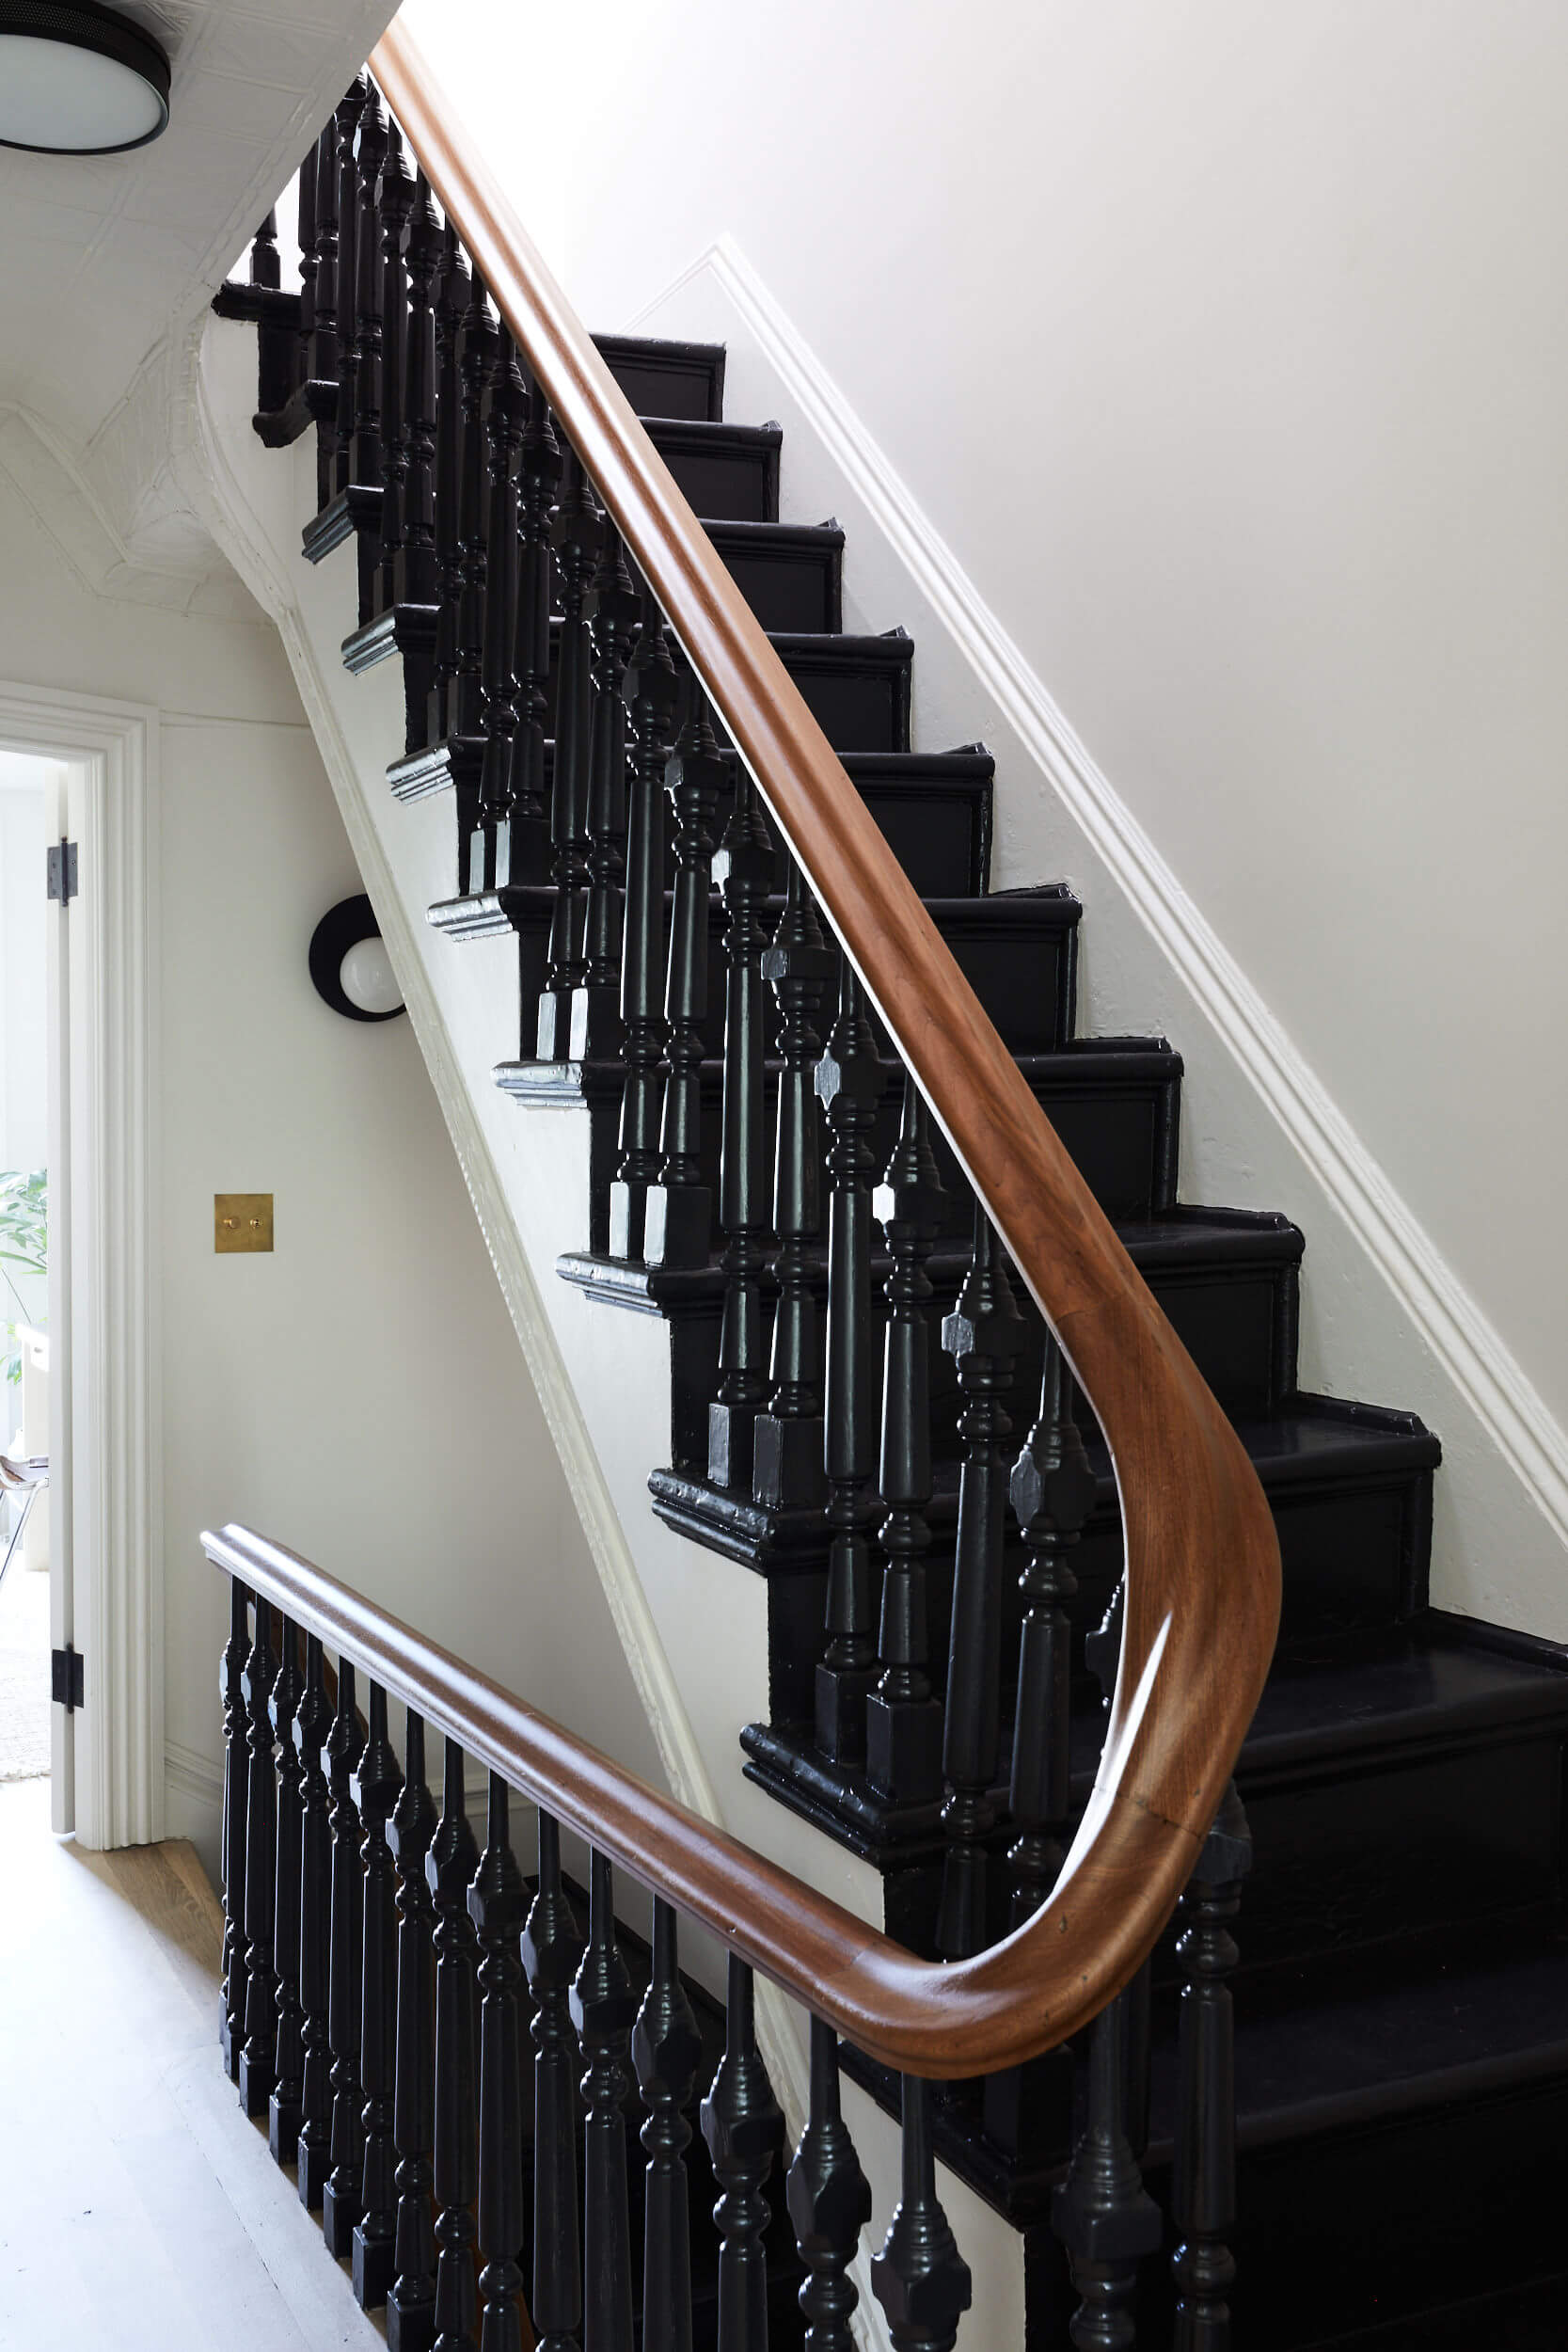 brooklyn-homes-for-sale-park-slope-413-8th-street-stair